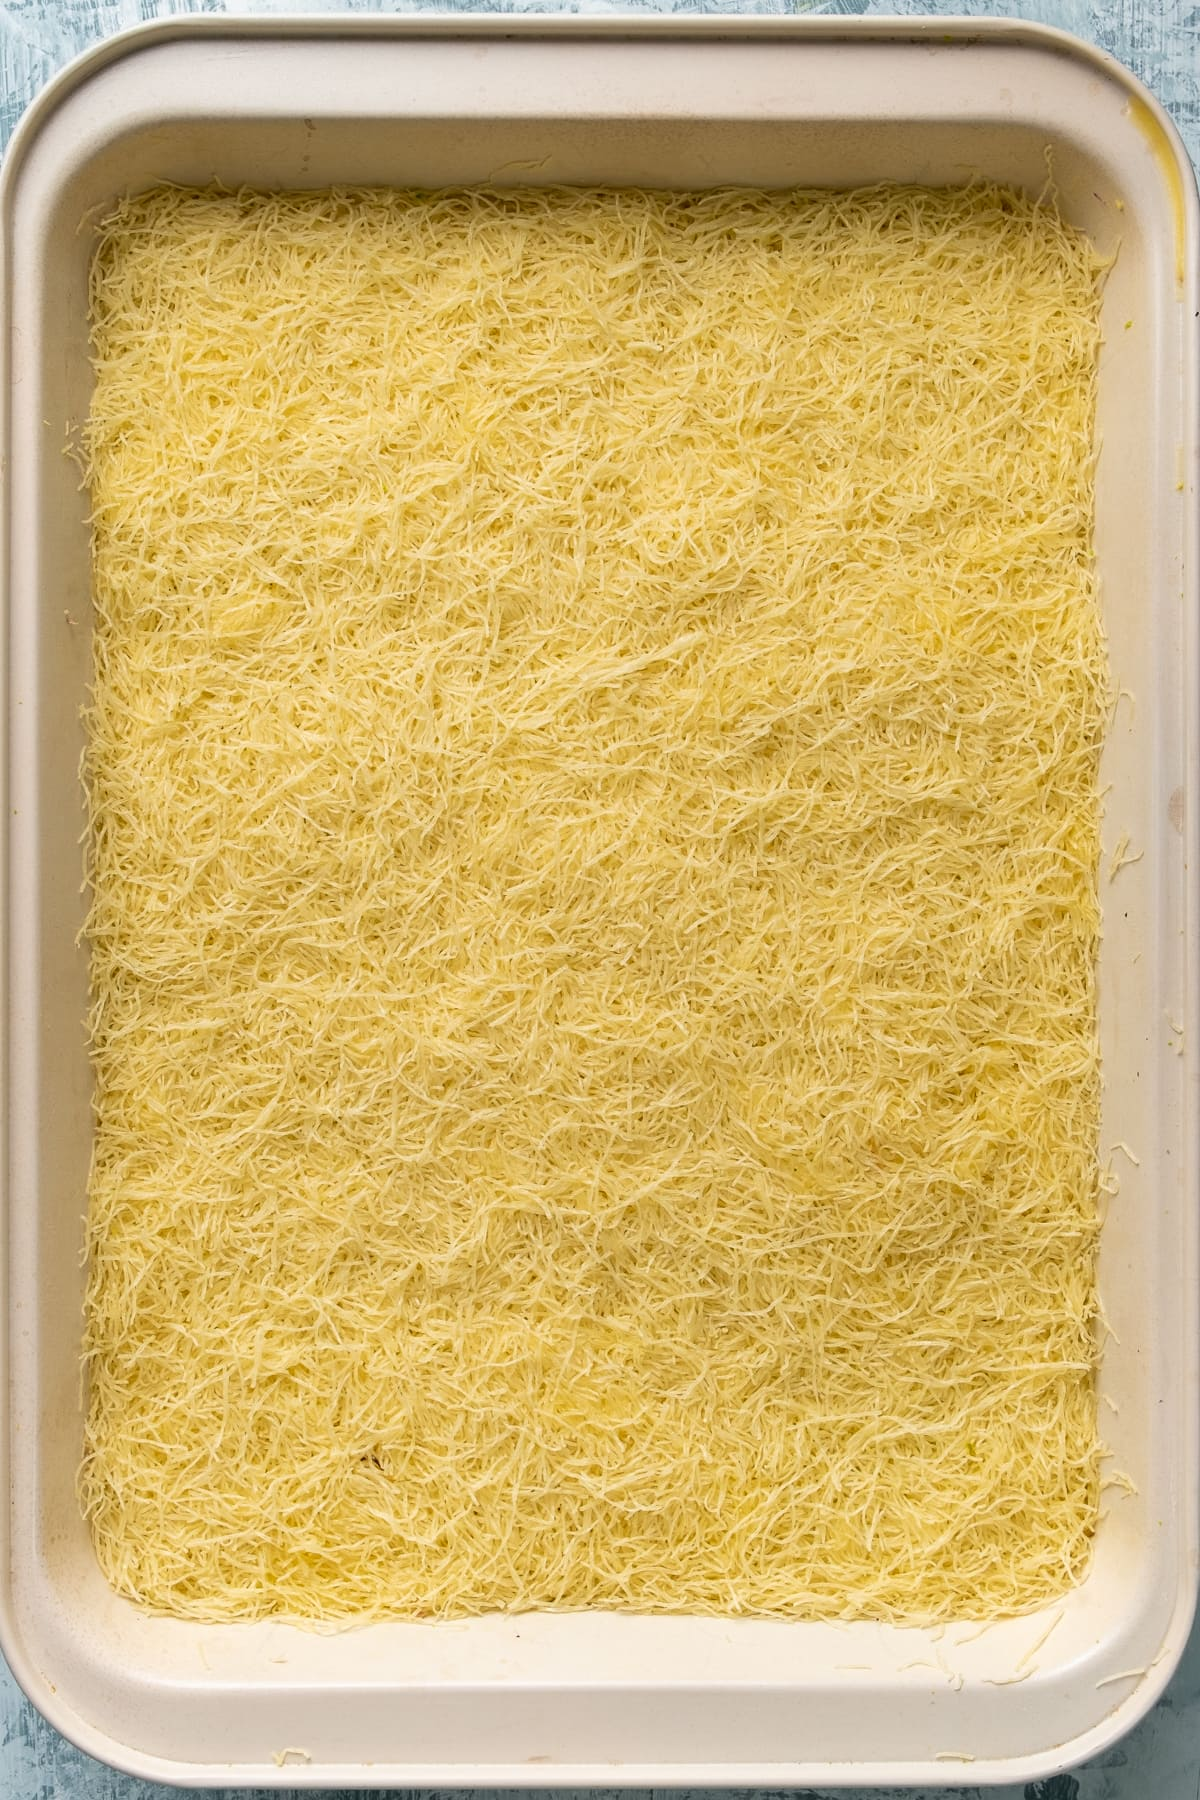 Raw kadayif ready to be baked in a rectangular pan.